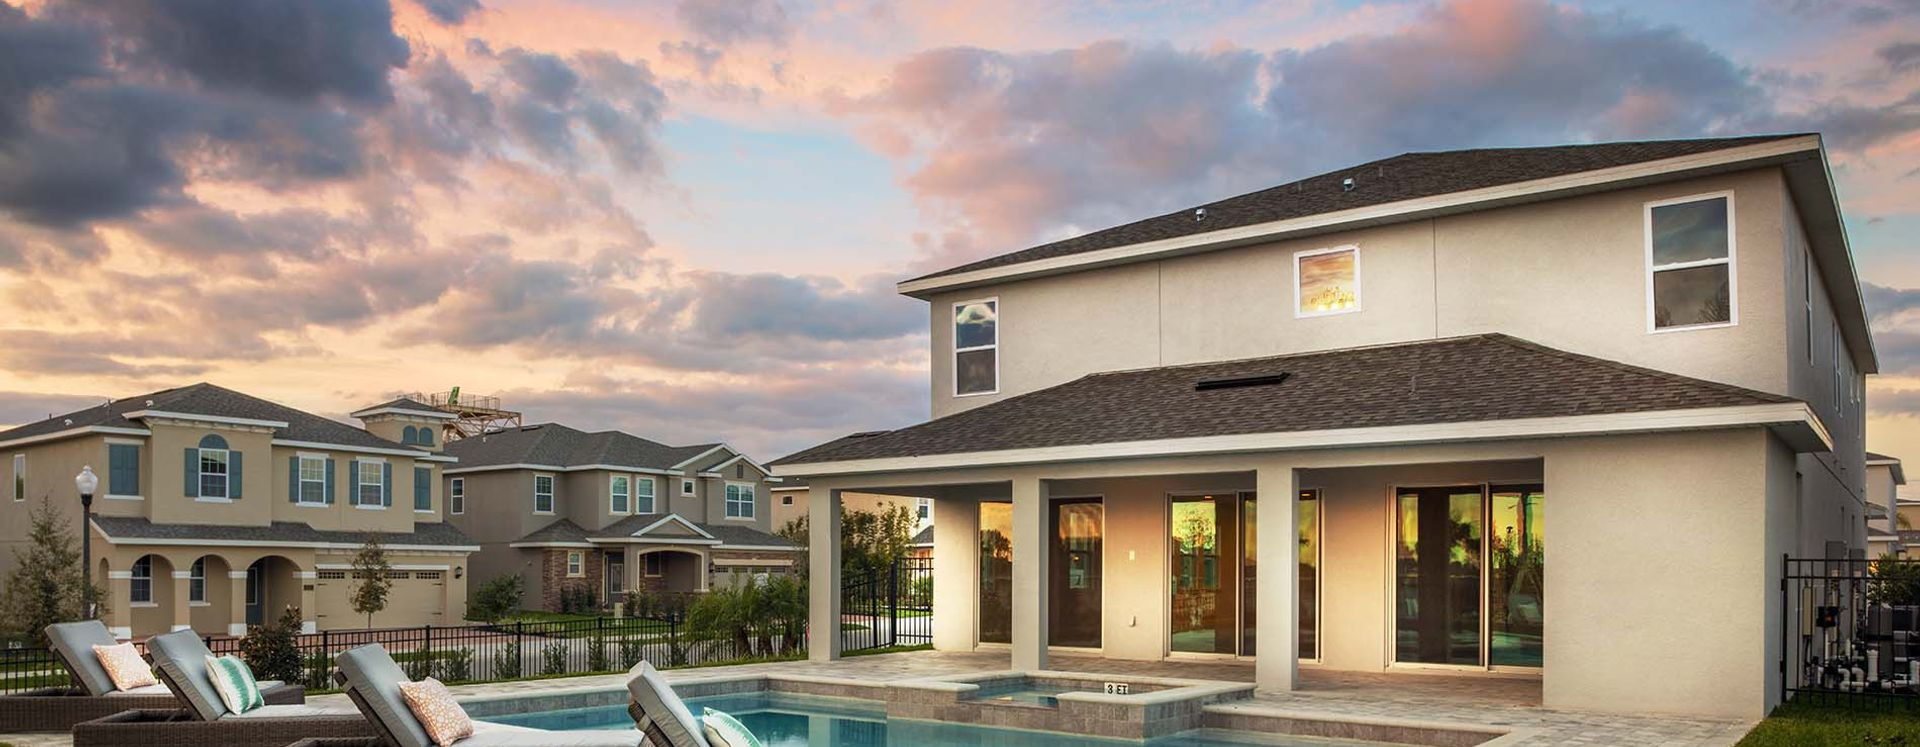 Marvelous Exterior Of A Encore Vacation Home At Reunion Resort